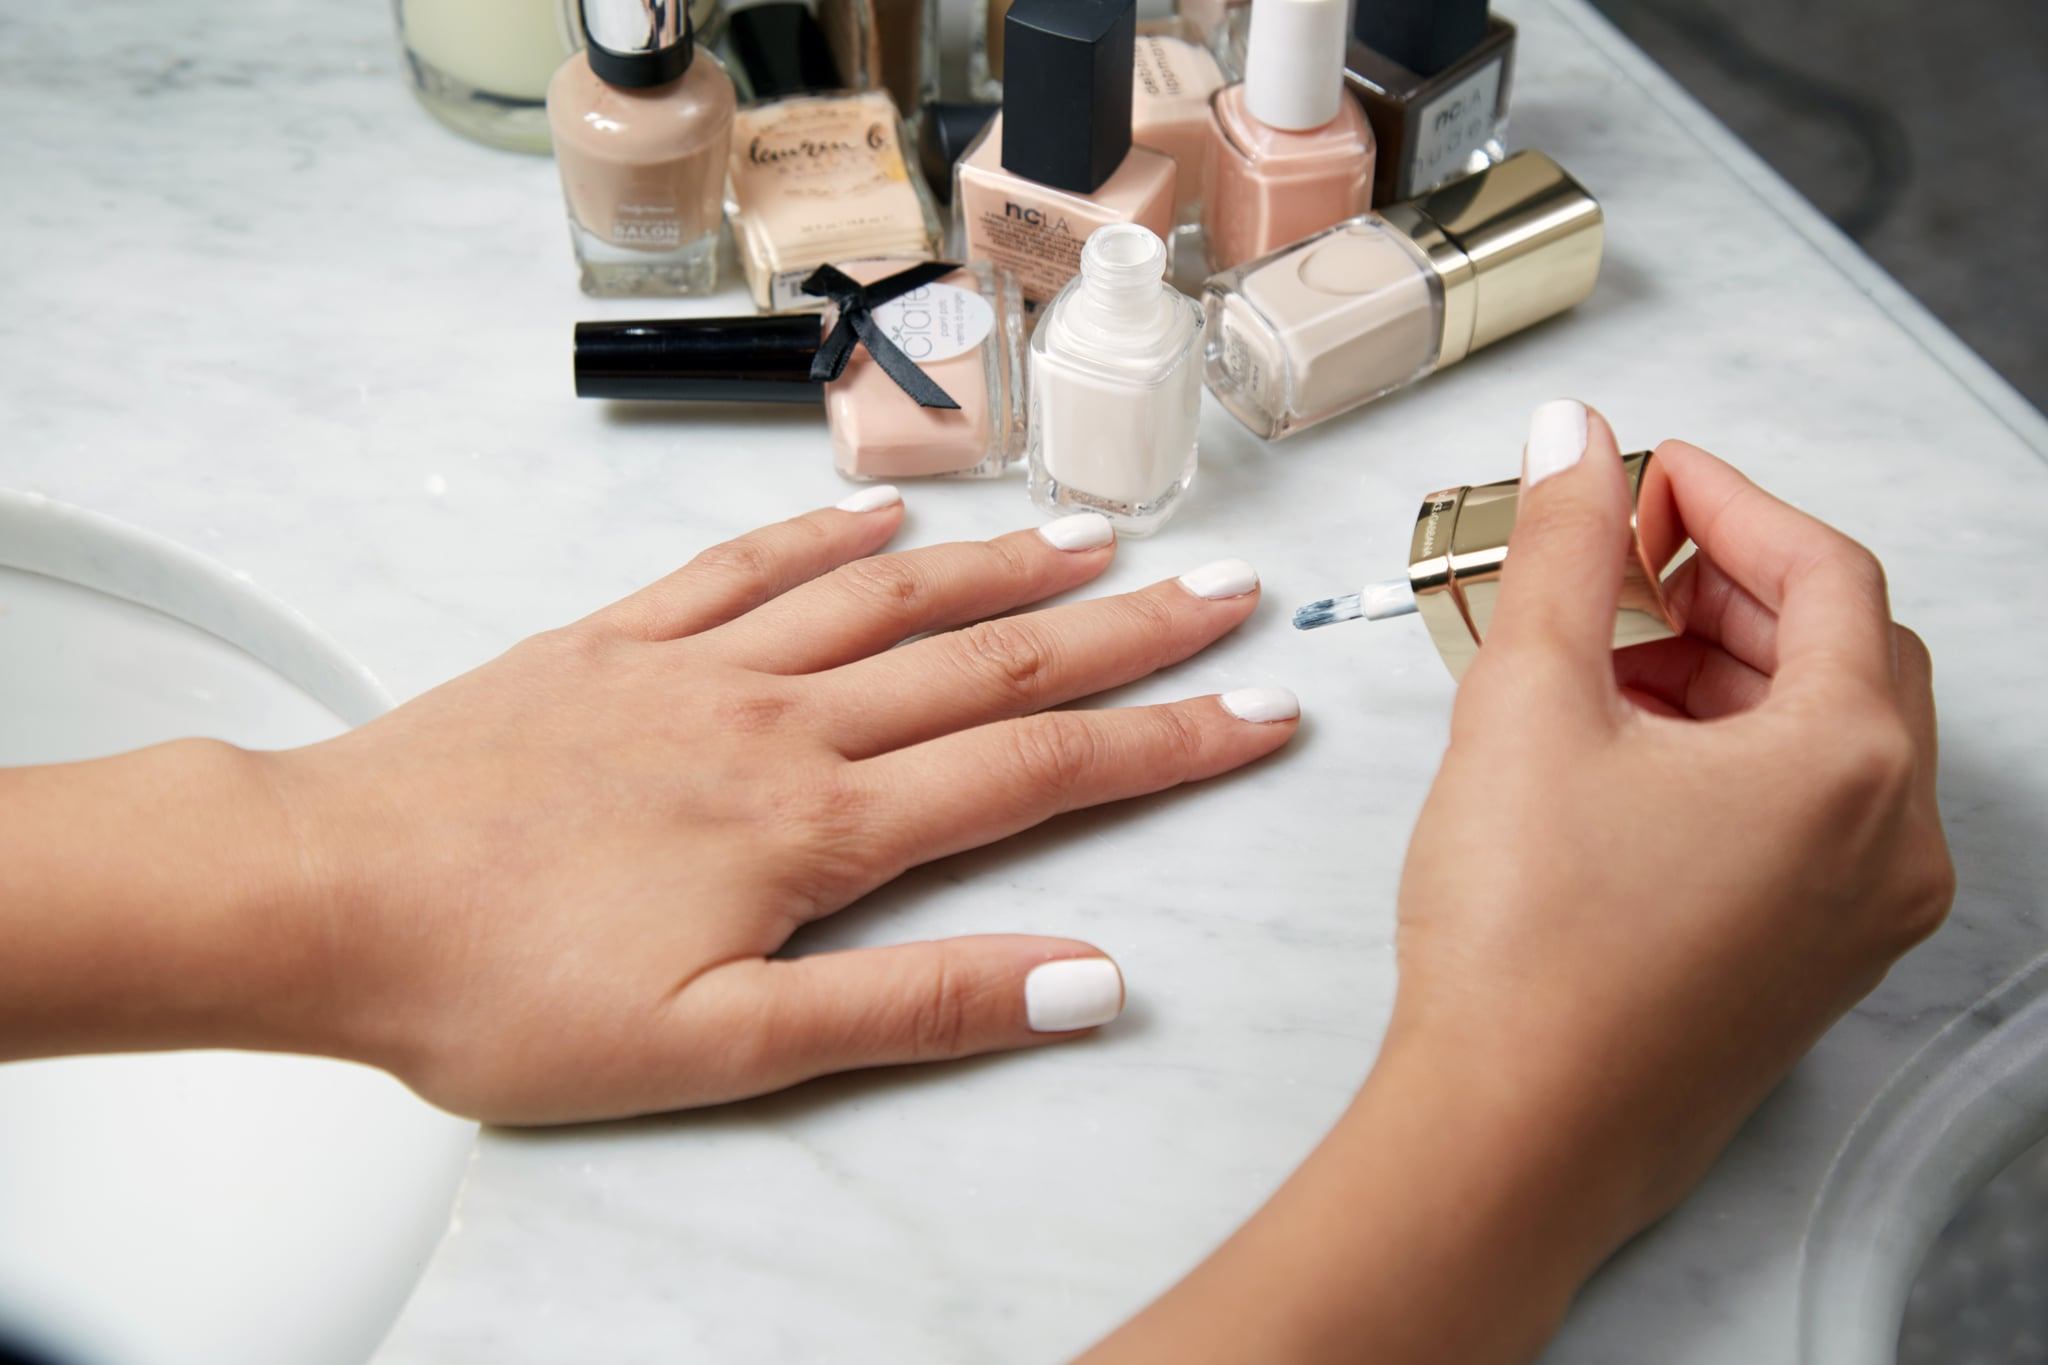 abd68fcce1 How to Keep Pale Manicures Looking Clean | POPSUGAR Beauty